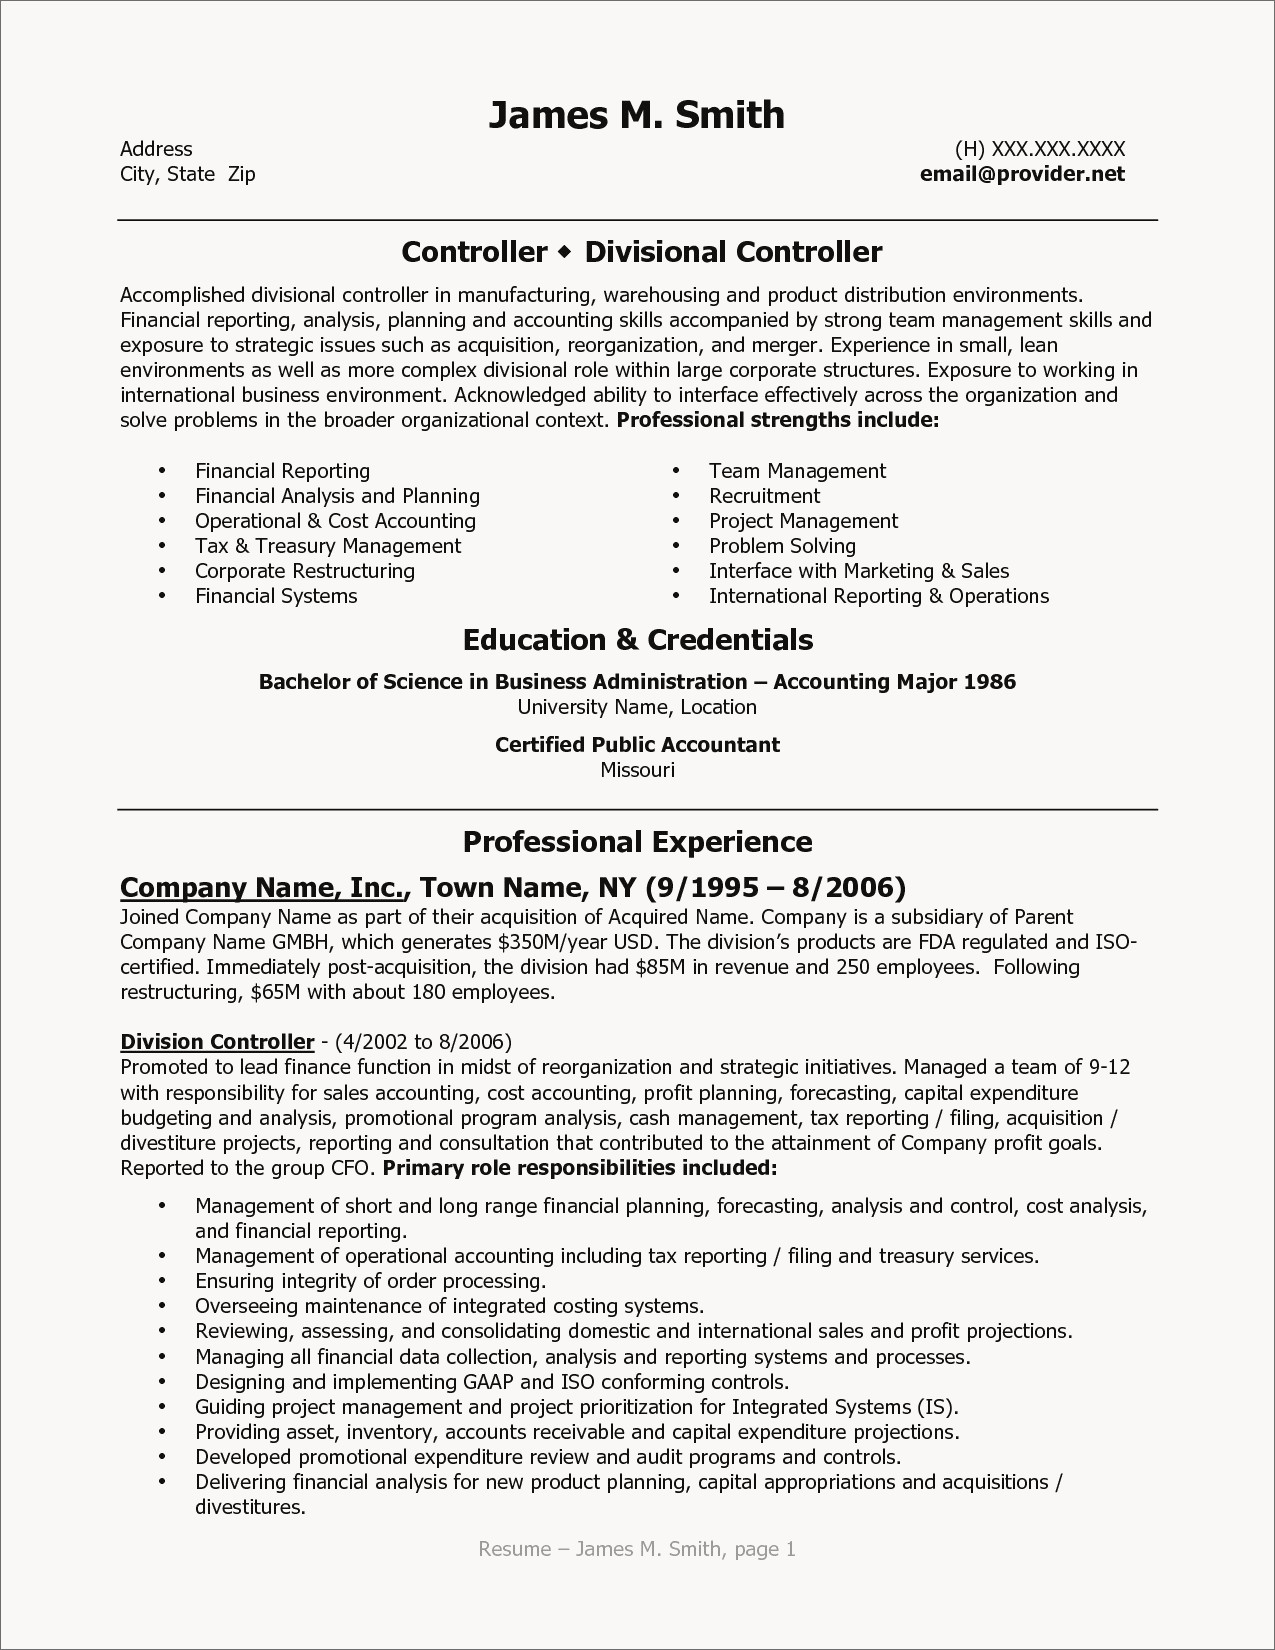 Talent Resume Template - Business Plan Financial Template Awesome Cfo Resume Template